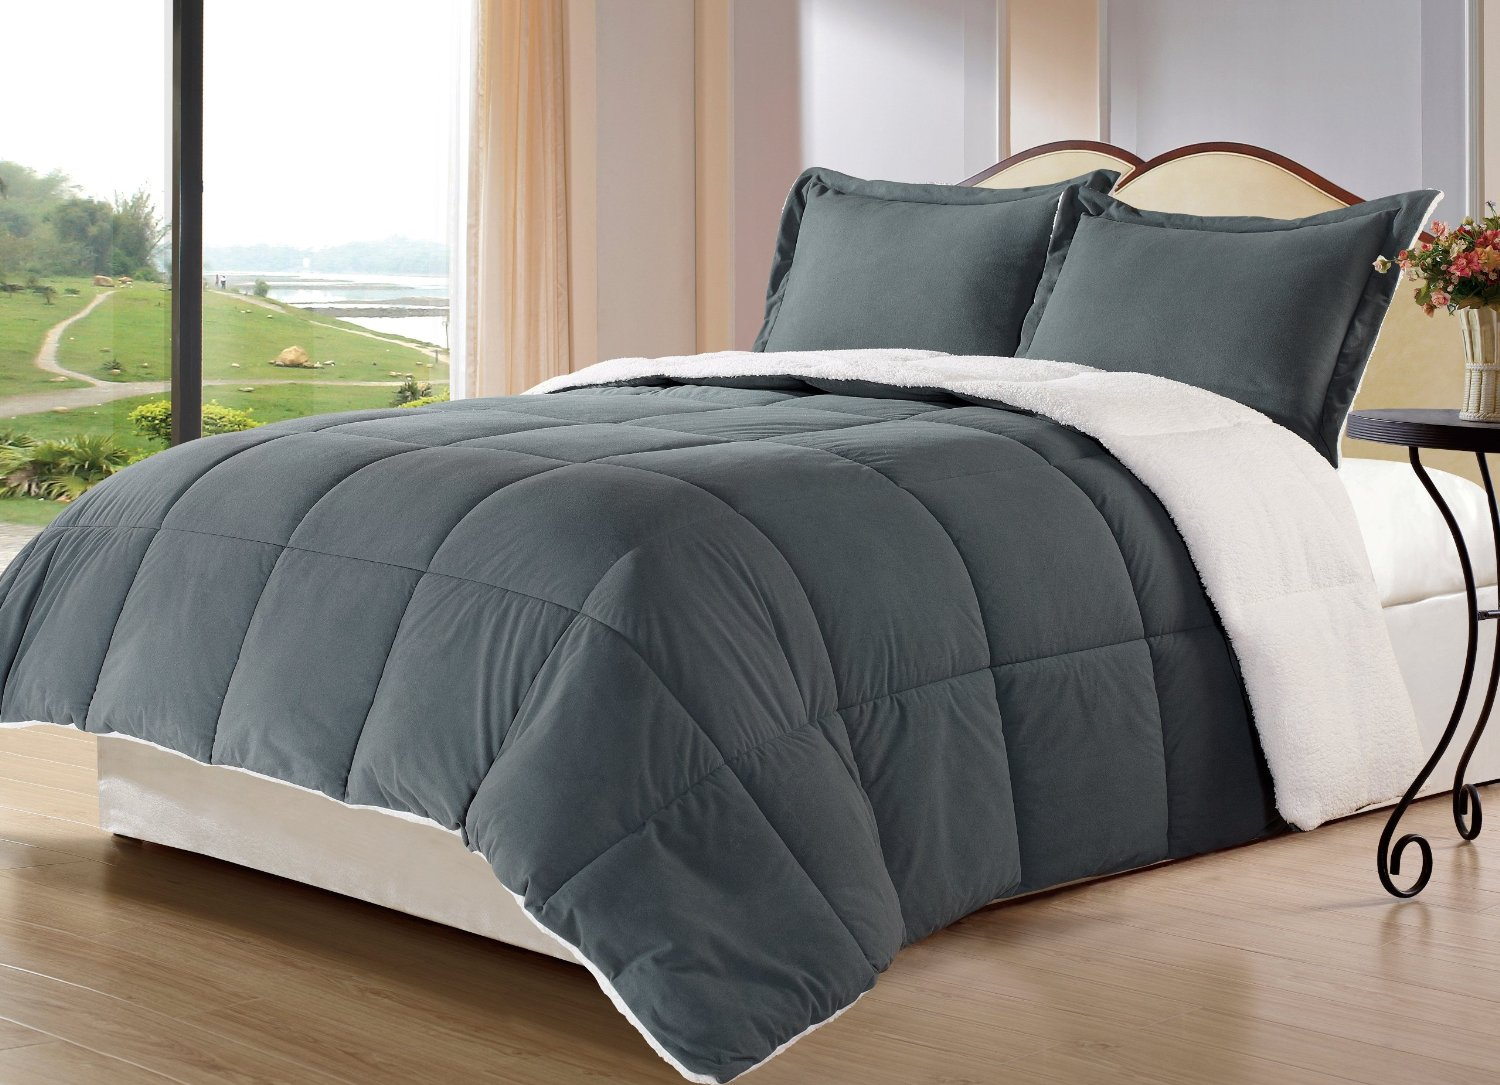 Charcoal Grey Comforter Amp Bedding Sets